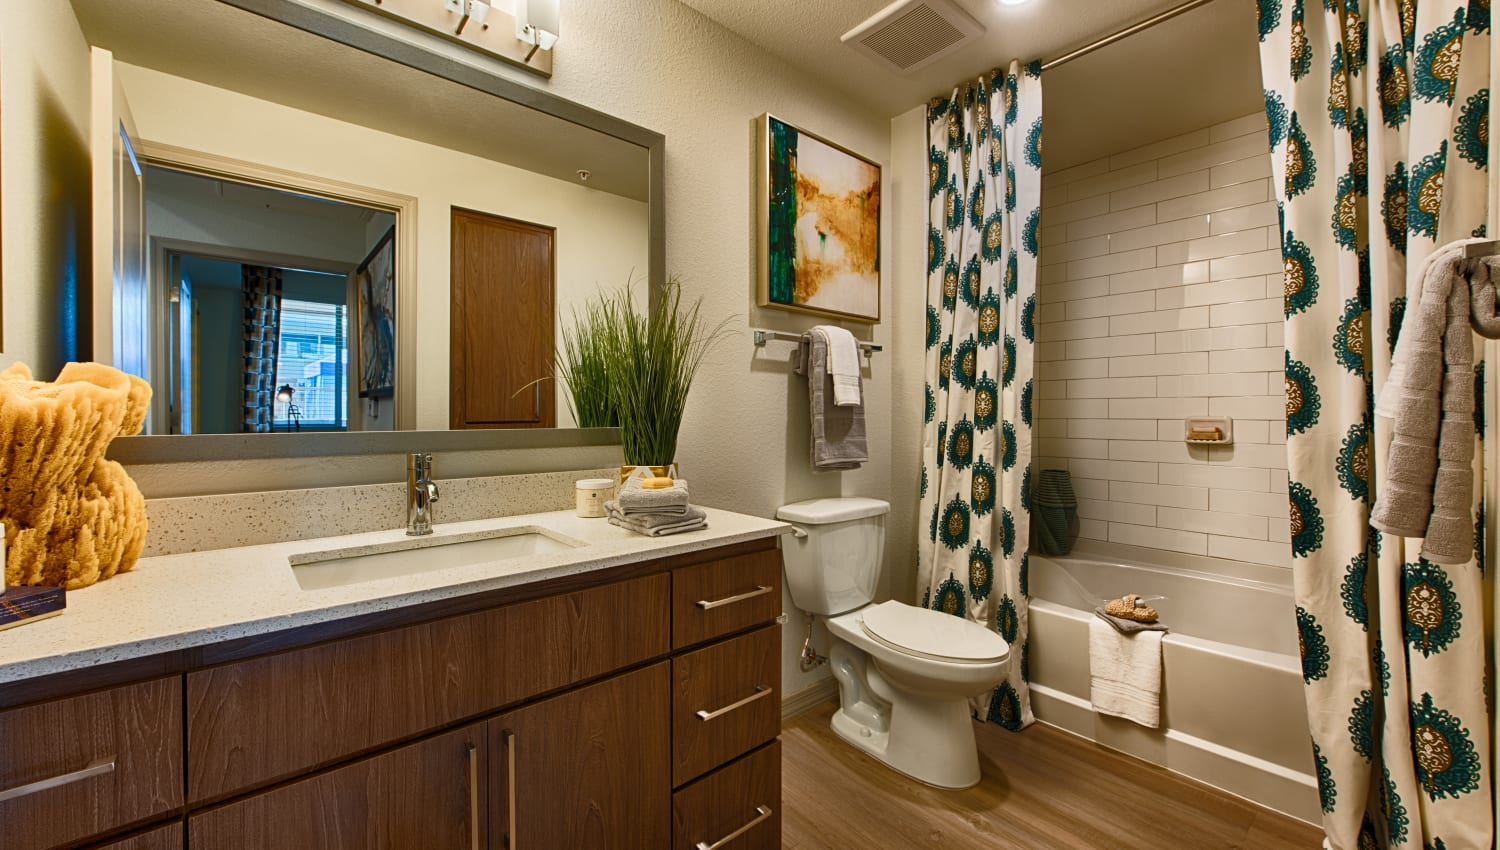 Bathroom at Ocio Plaza Del Rio in Peoria, Arizona